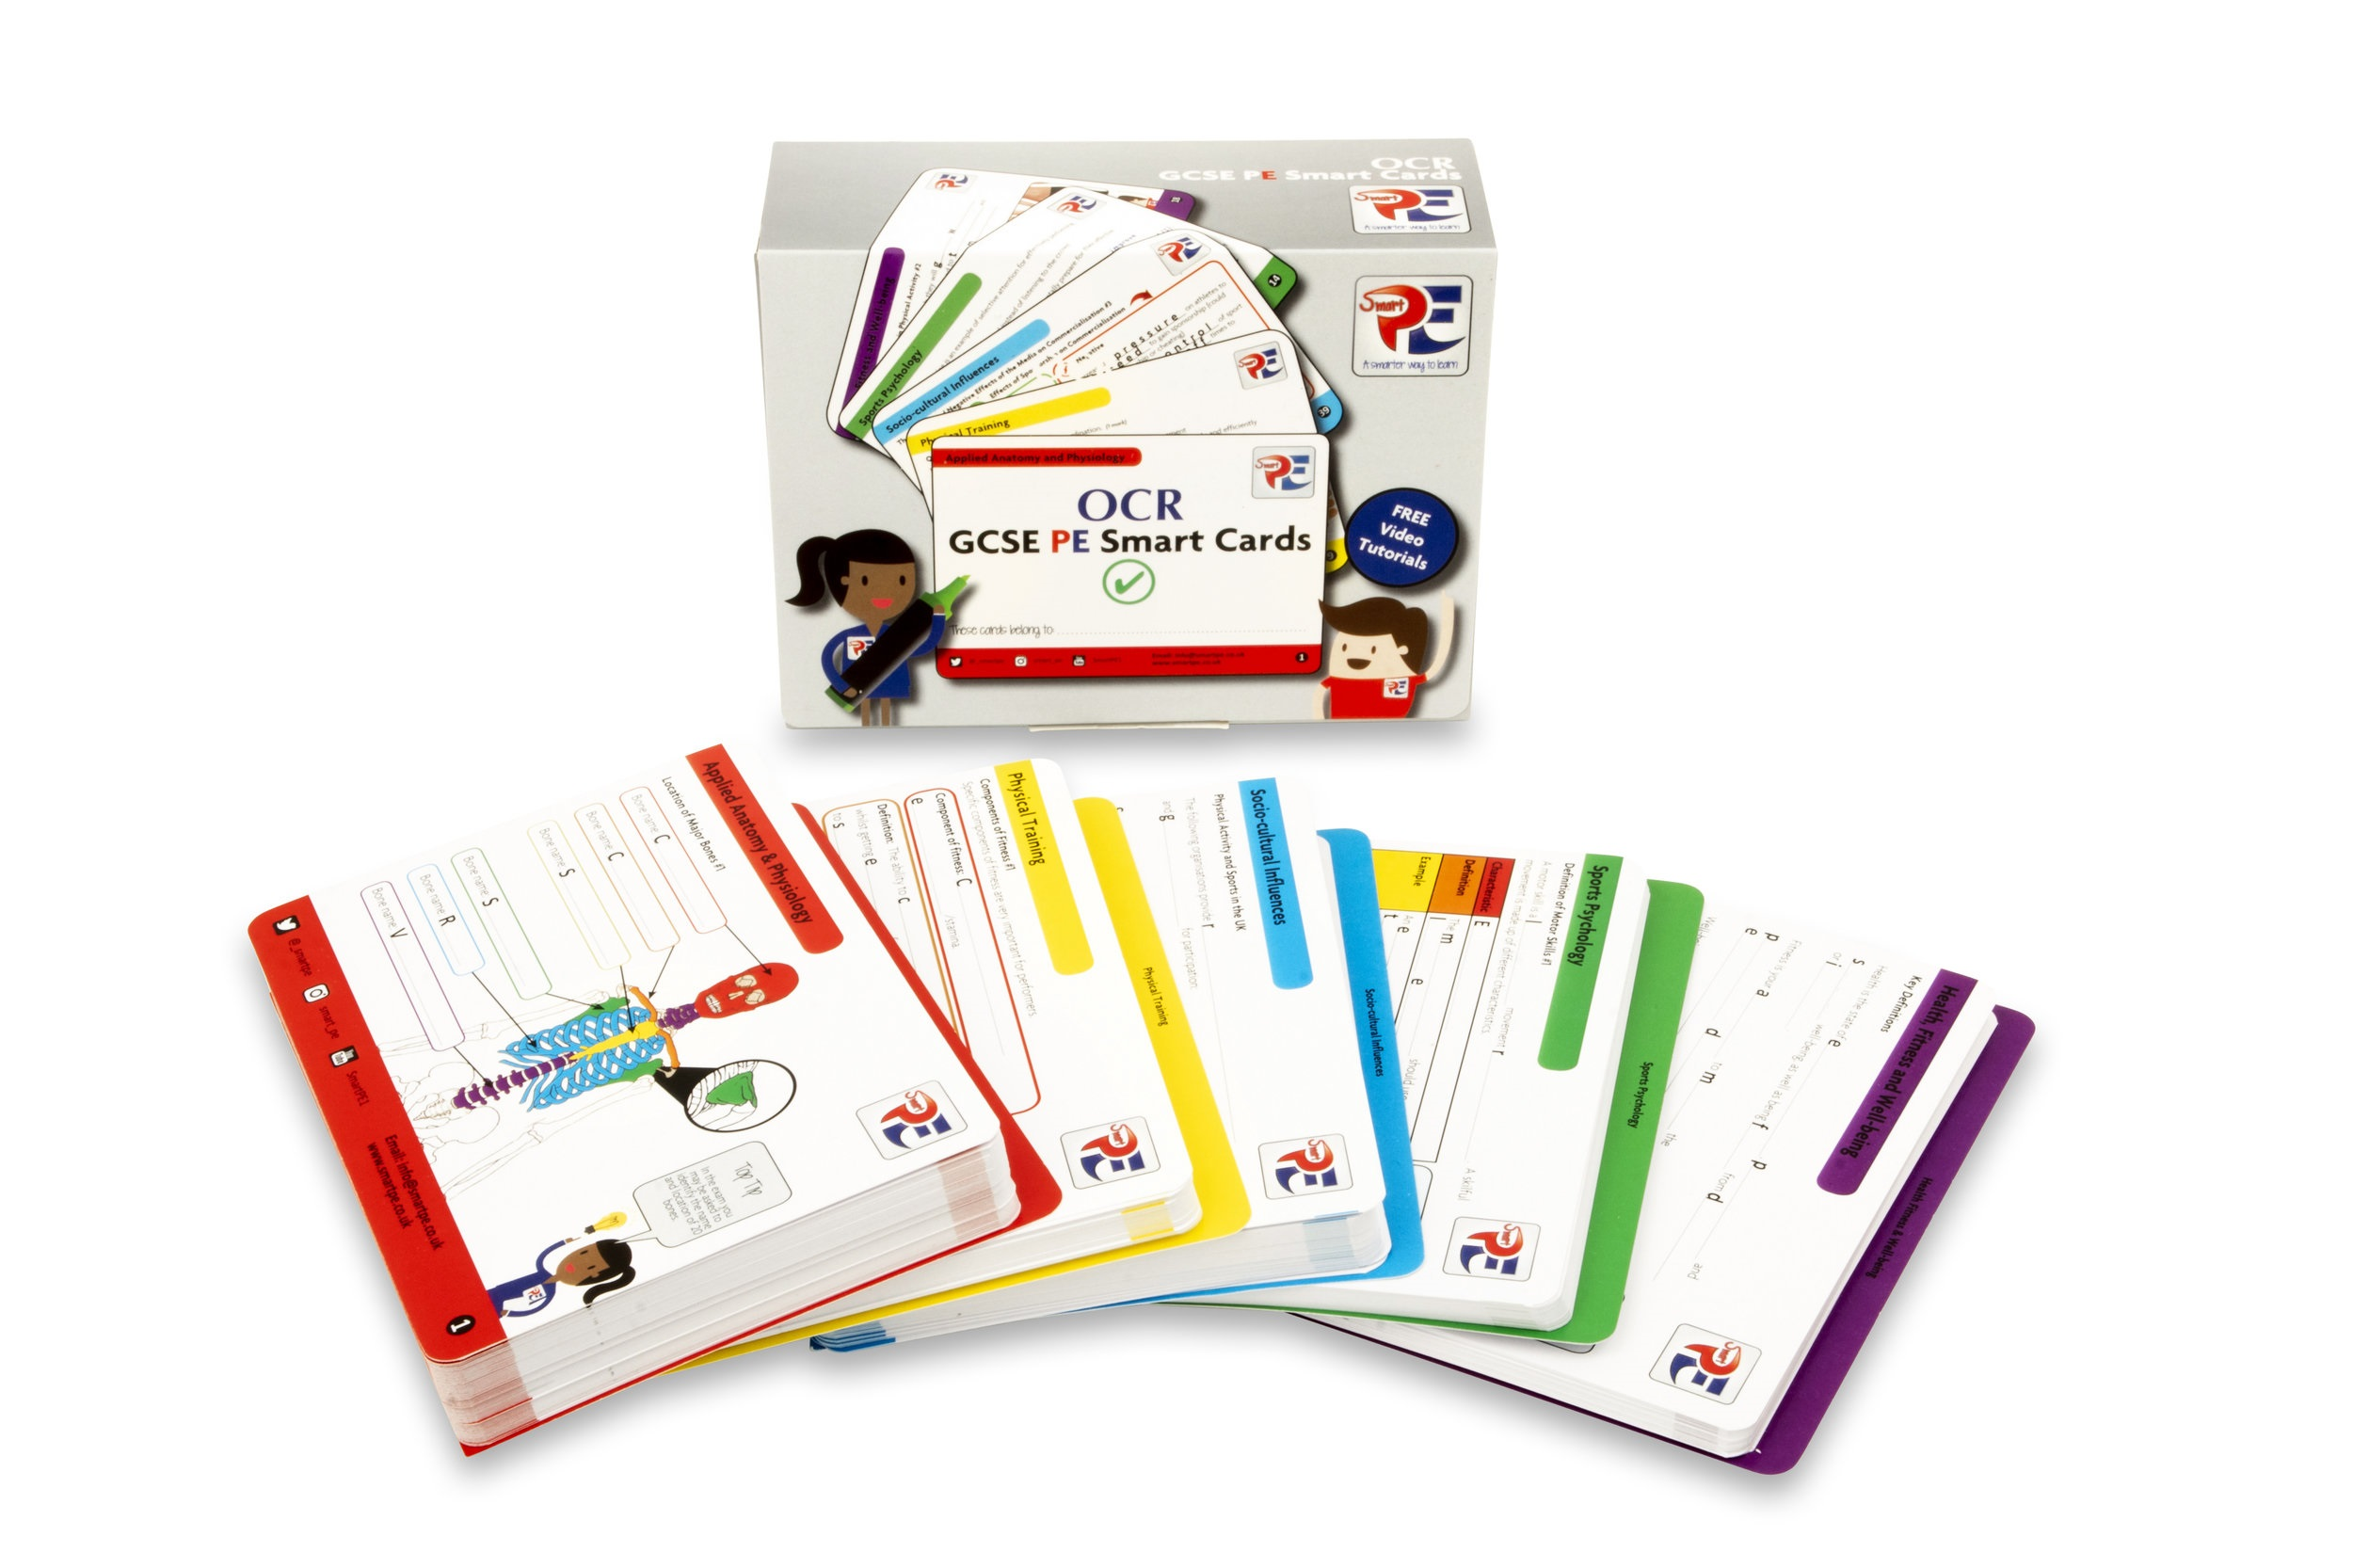 OCR GCSE PE Smart Cards - ONLY £18.49Smart Cards are here to support and help you be better prepared for the challenging GCSE PE exams. They are concise, easy to use and specific to your exam board.Buy now